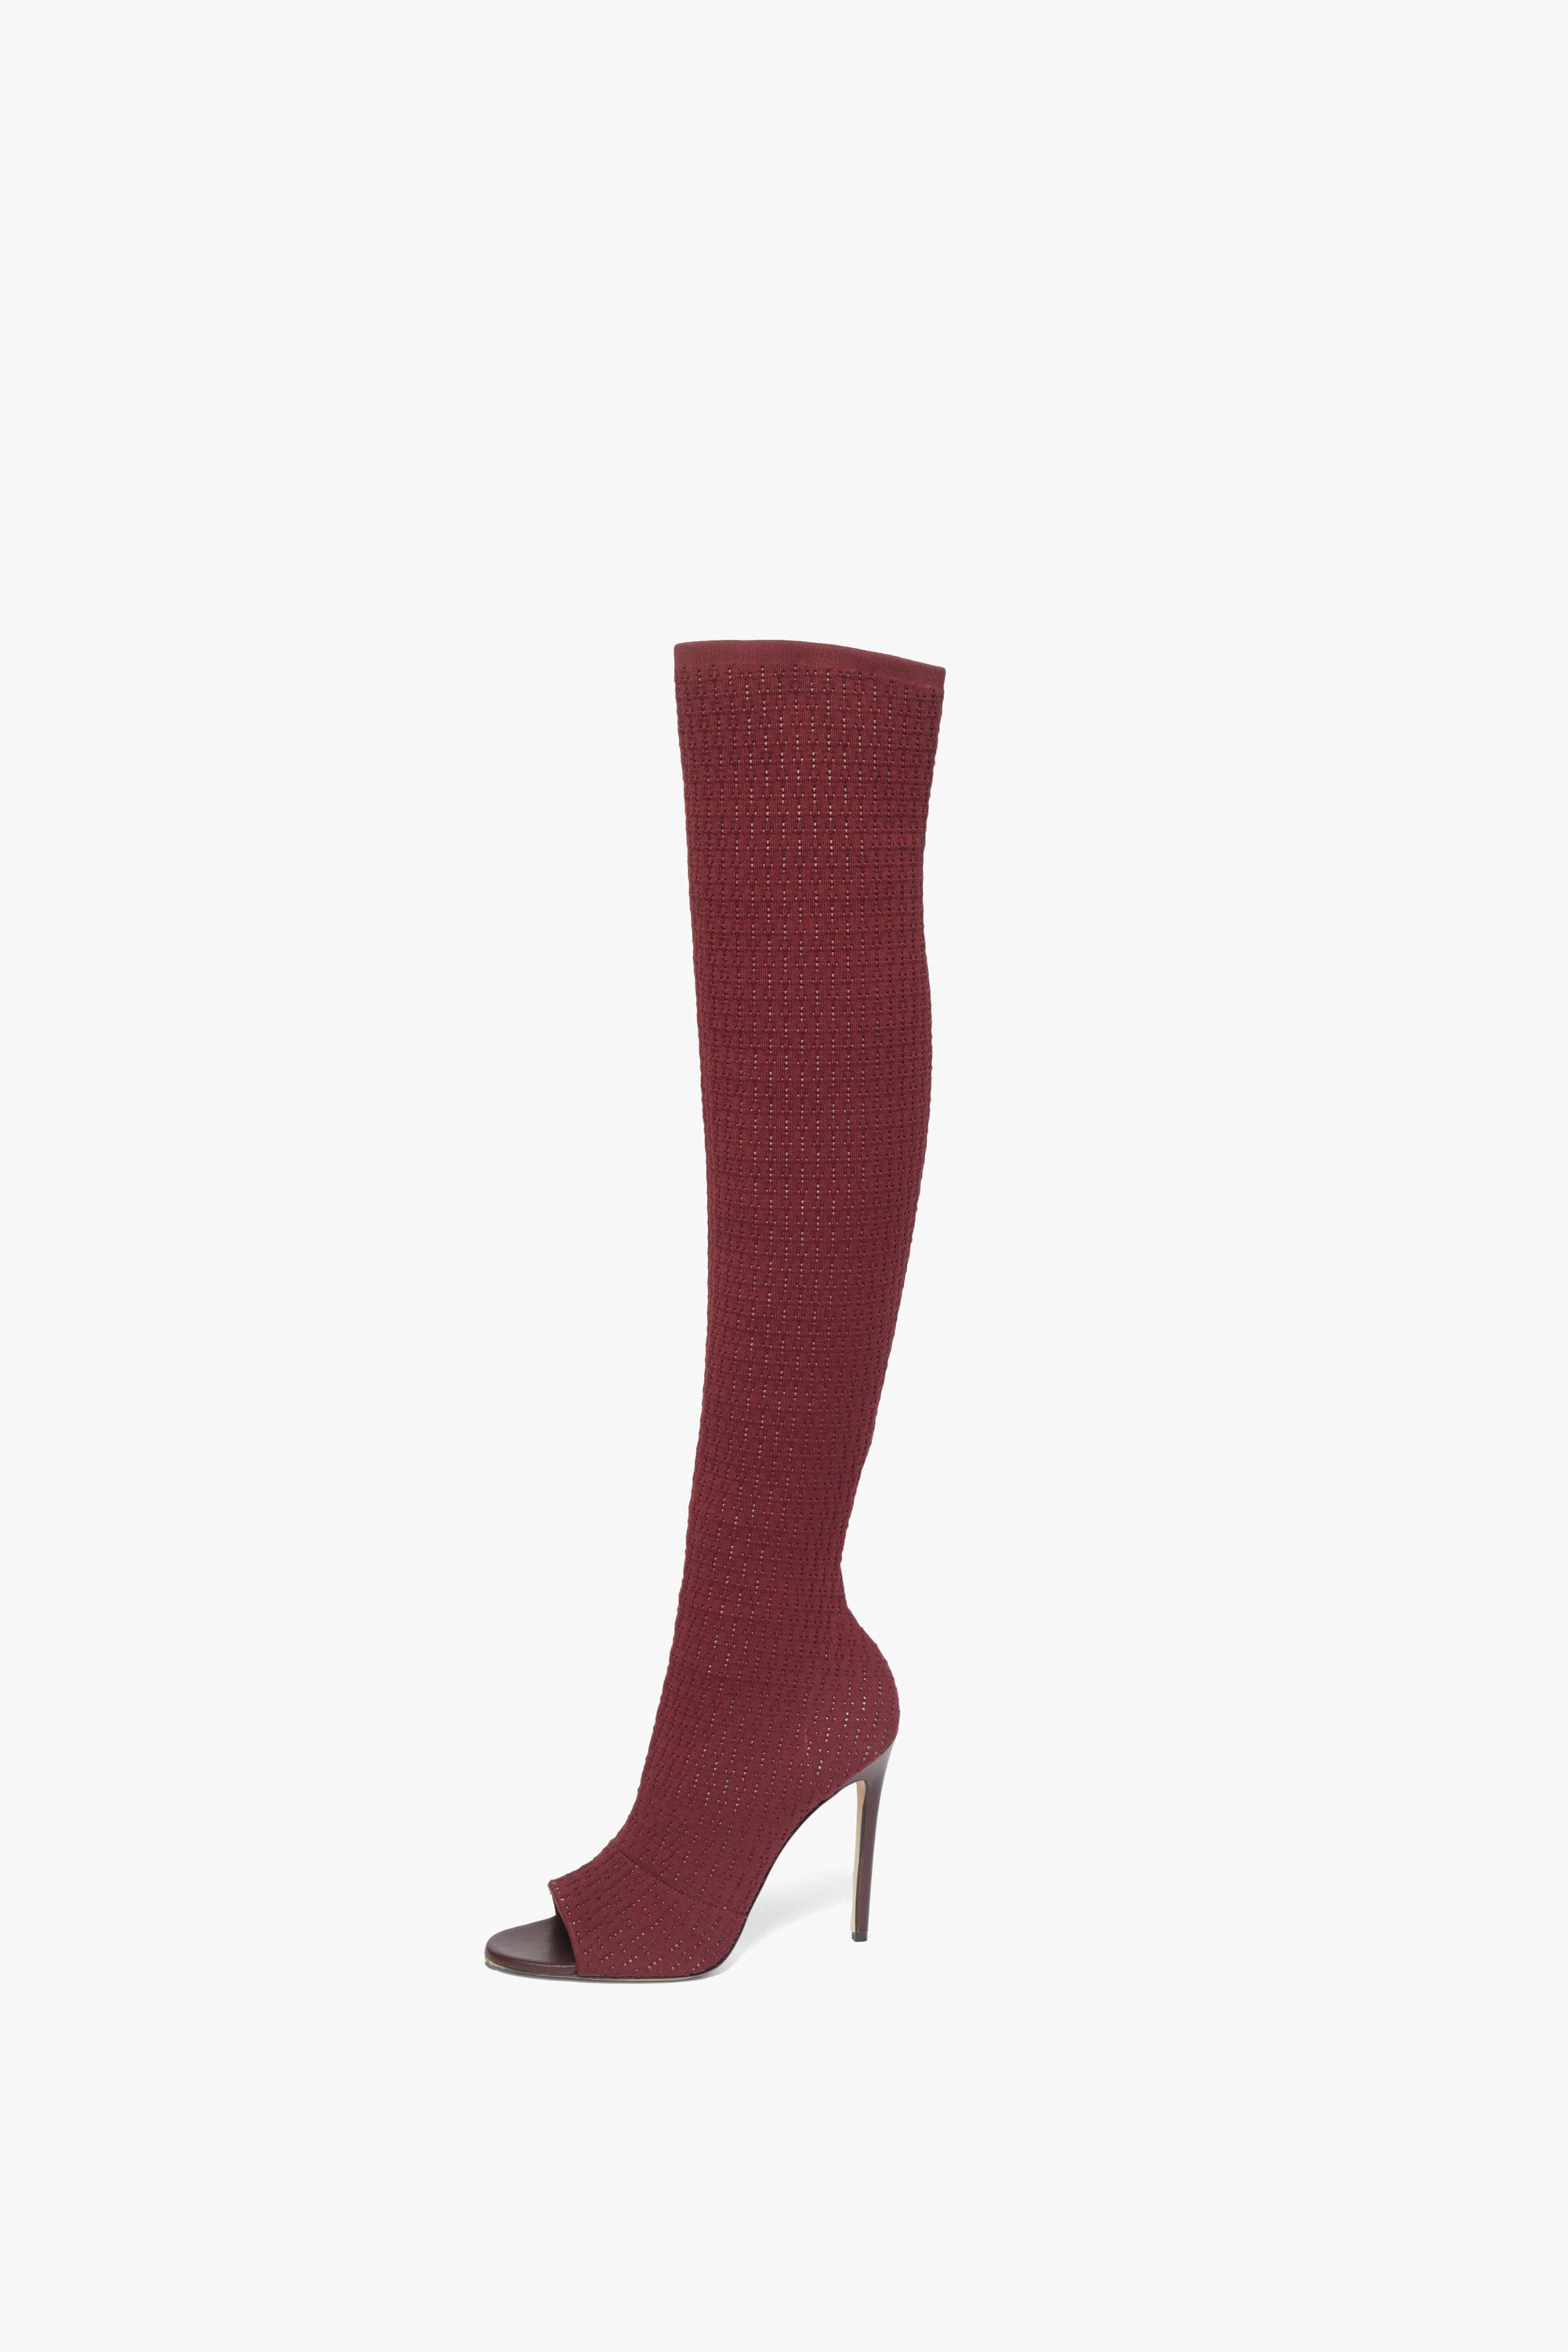 Jasmin 115MM Knit Boots In Bordeaux